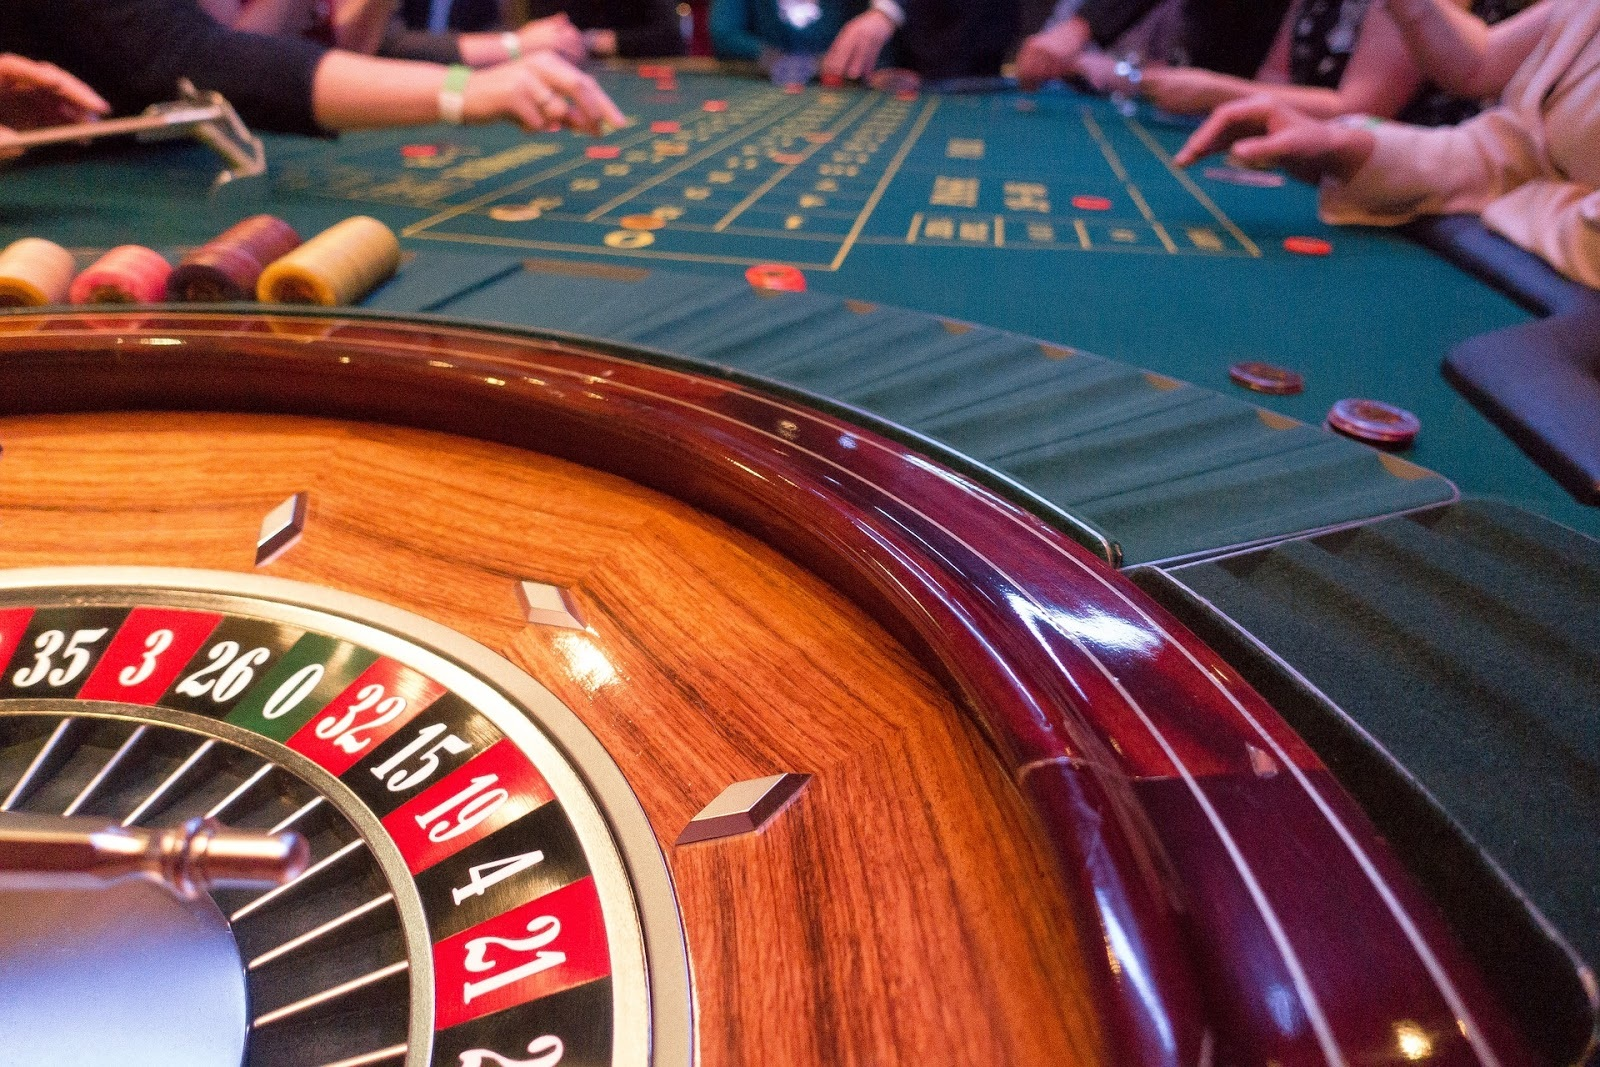 Is The Online Gambling Site I Am Using Legal?